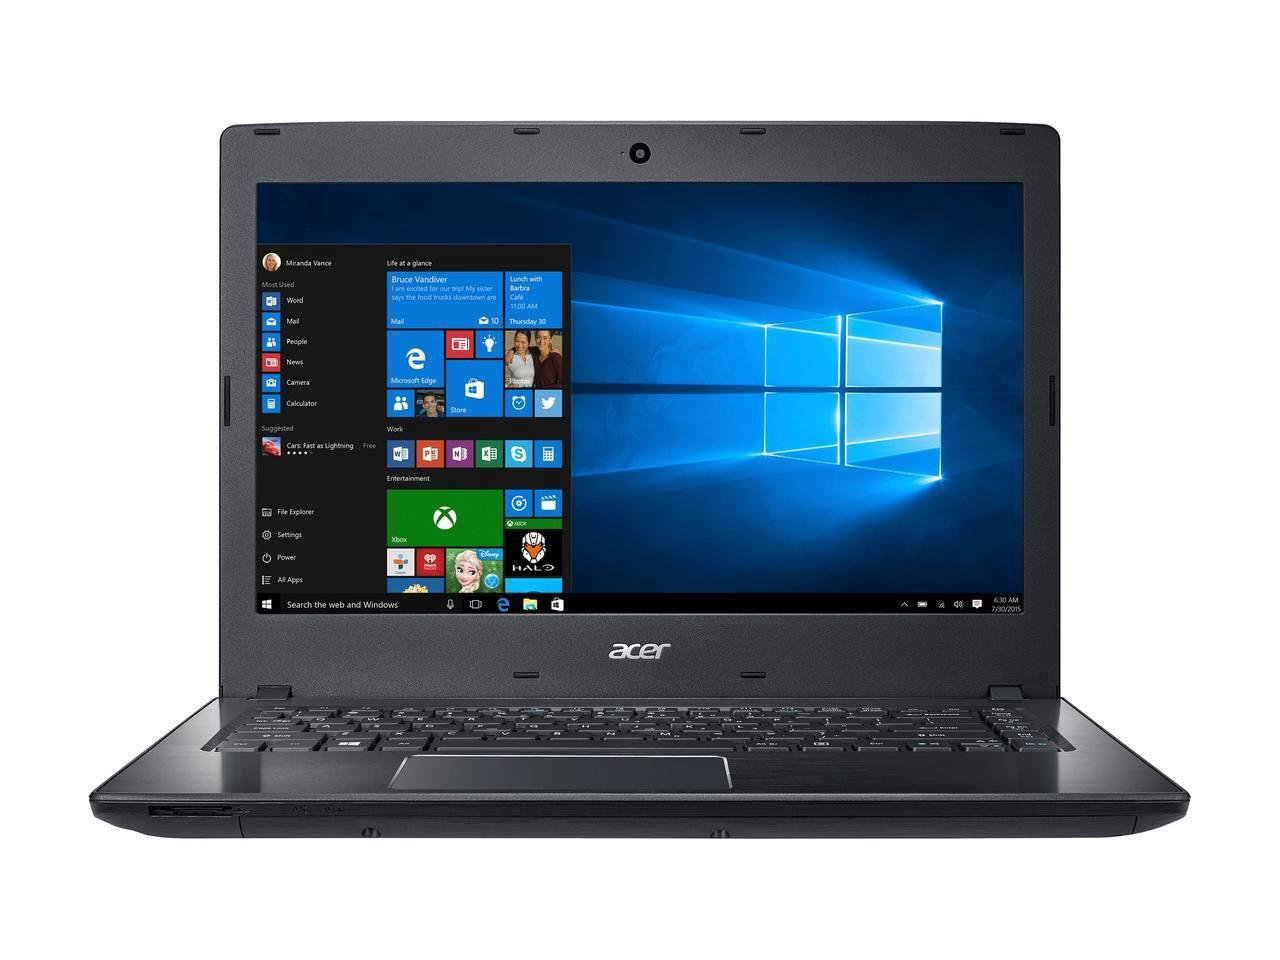 """2018 Acer TravelMate P2 TMP249 14.0"""" HD Business Laptop Computer, Intel Core i5-6200U up to 2.80GHz, 8GB DDR4, 500GB HDD, DVD-Writer, 802.11ac, TPM 1.2, USB 3.0, HDMI, Windows 10 Professional"""